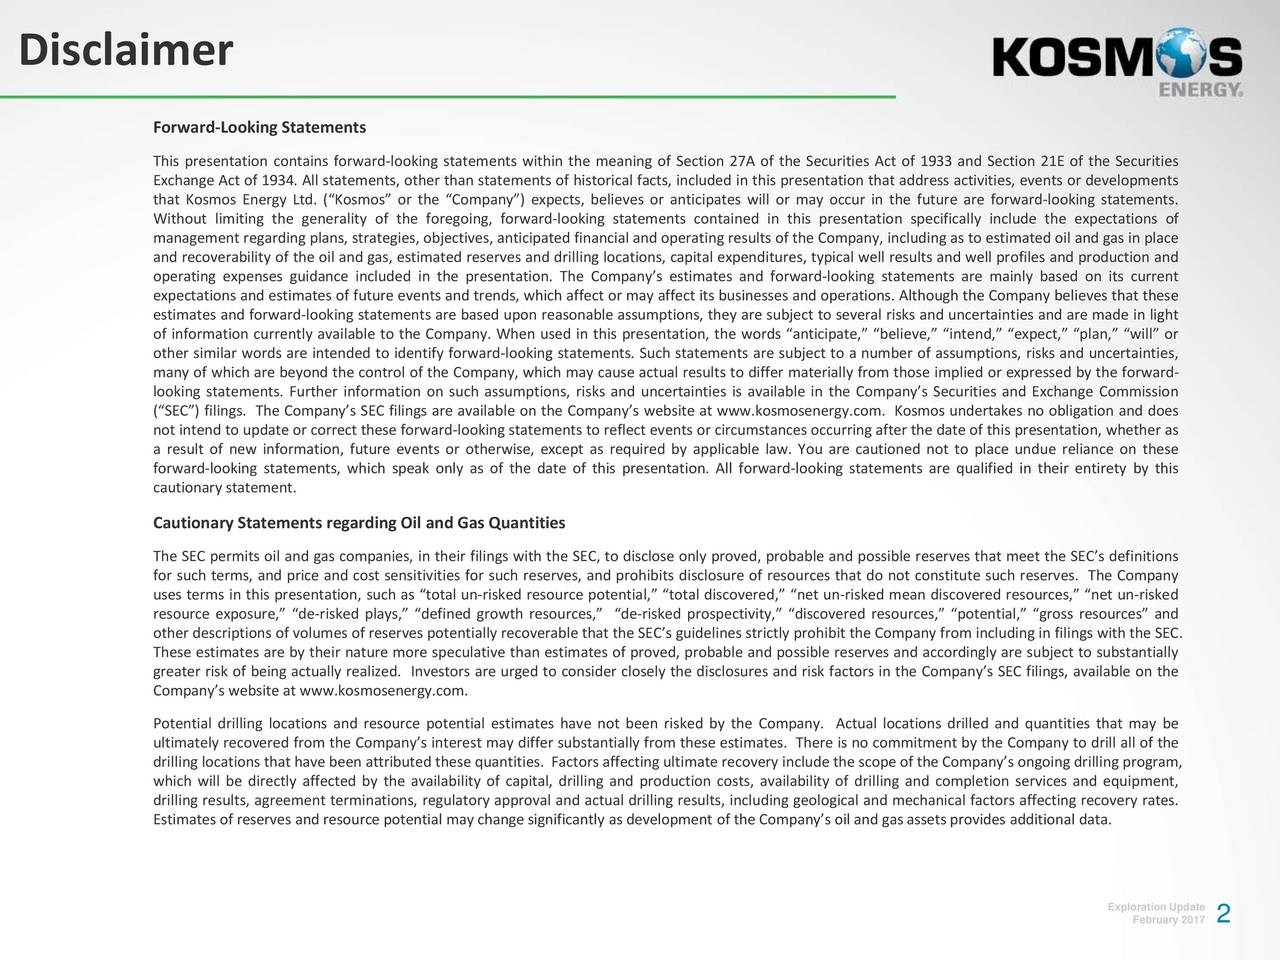 Forward-Looking Statements This presentation contains forward-looking statements within the meaning of Section 27A of the Securities Act of 1933 and Section 21E of the Securities Exchange Act of 1934. All statements, other than statements of historical facts, included in this presentation that address activities, events or developments that Kosmos Energy Ltd. (Kosmos or the Company) expects, believes or anticipates will or may occur in the future are forward-looking statements. Without limiting the generality of the foregoing, forward-looking statements contained in this presentation specifically include the expectations of management regarding plans, strategies, objectives, anticipated financial and operating results of the Company, including as to estimated oil and gas in place and recoverability of the oil and gas, estimated reserves and drilling locations, capital expenditures, typical well results and well profiles and production and operating expenses guidance included in the presentation. The Companys estimates and forward-looking statements are mainly based on its current expectations and estimates of future events and trends, which affect or may affect its businesses and operations. Although the Company believes that these estimates and forward-looking statements are based upon reasonable assumptions, they are subject to several risks and uncertainties and are made in light of information currently available to the Company. When used in this presentation, the words anticipate, believe, intend, expect, plan, will or other similar words are intended to identify forward-looking statements. Such statements are subject to a number of assumptions, risks and uncertainties, many of which are beyond the control of the Company, which may cause actual results to differ materially from those implied or expressed by the forward- looking statements. Further information on such assumptions, risks and uncertainties is available in the Companys Securities and Exchange Commi